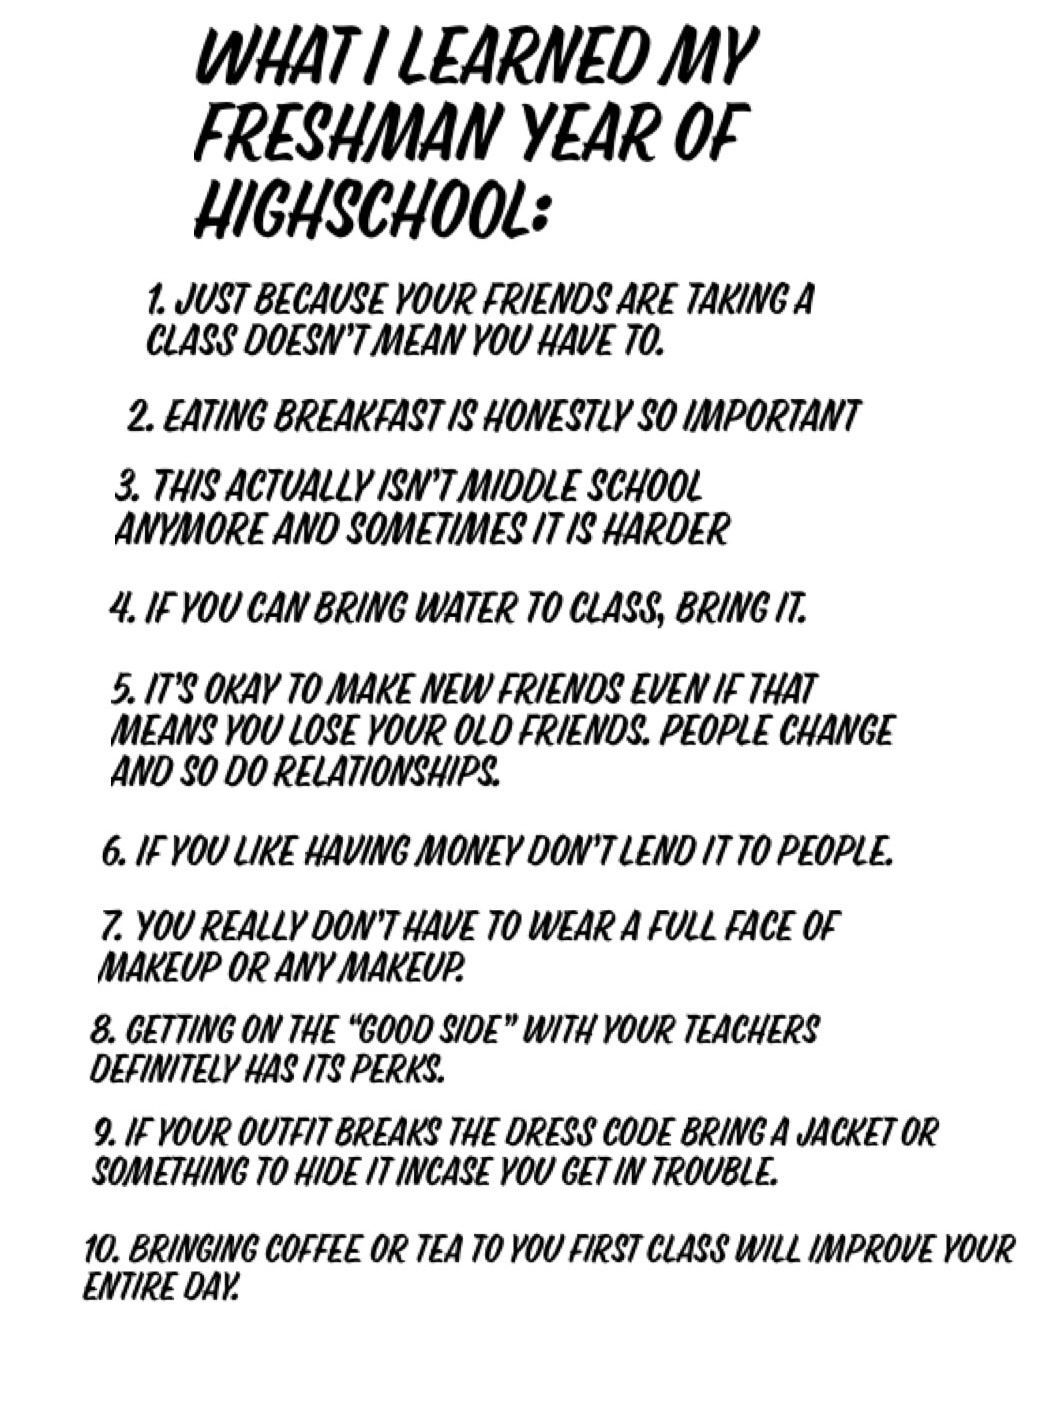 Highschool Advice From A Former Freshman What I Learned